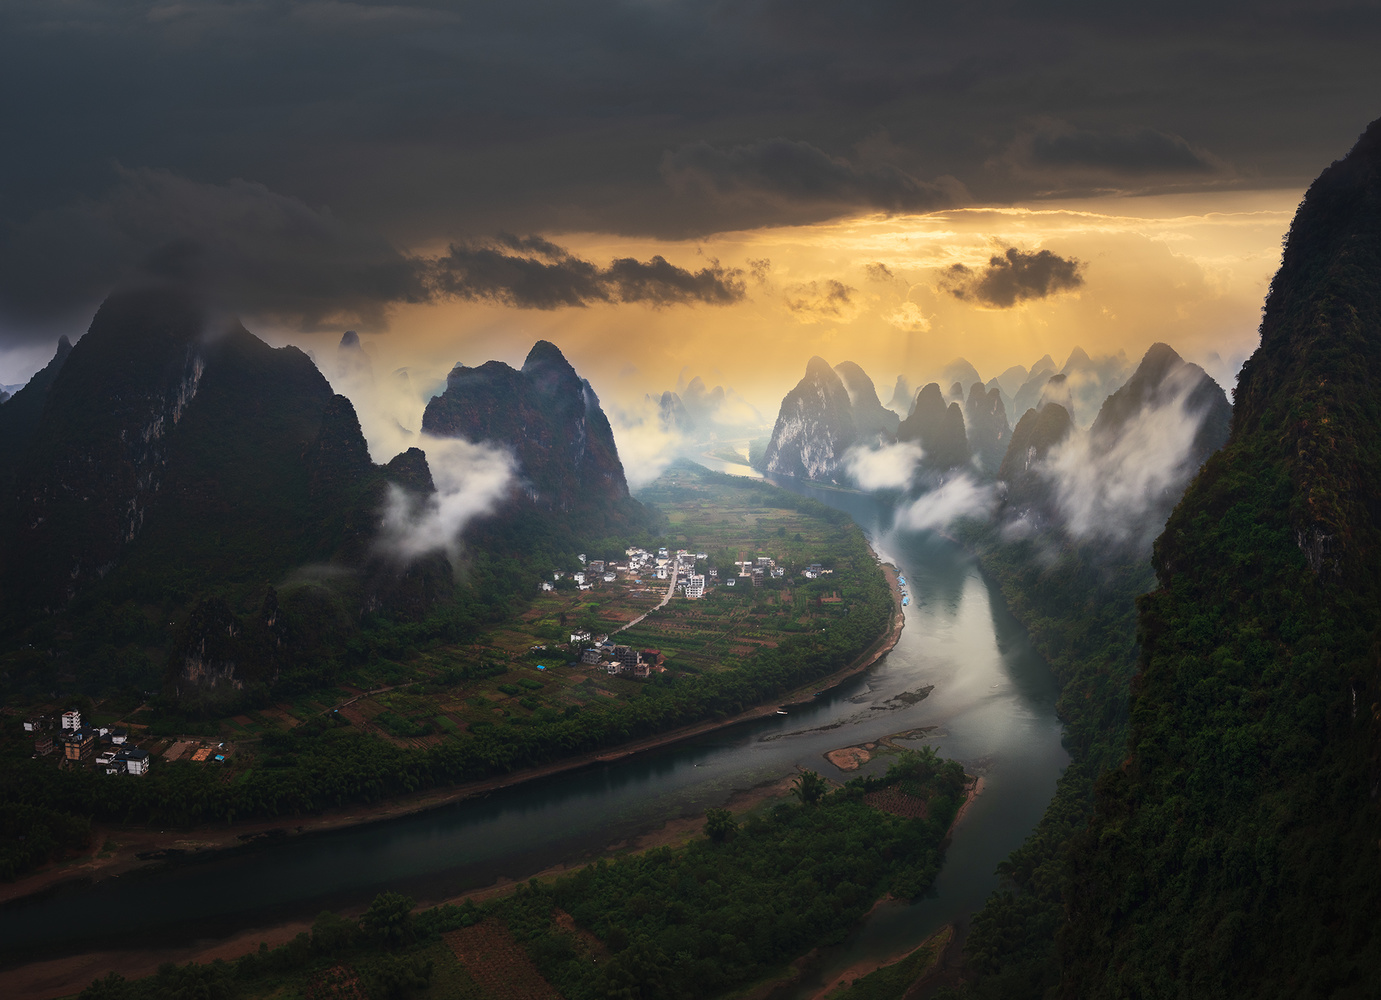 The Mystical River by Win Mag